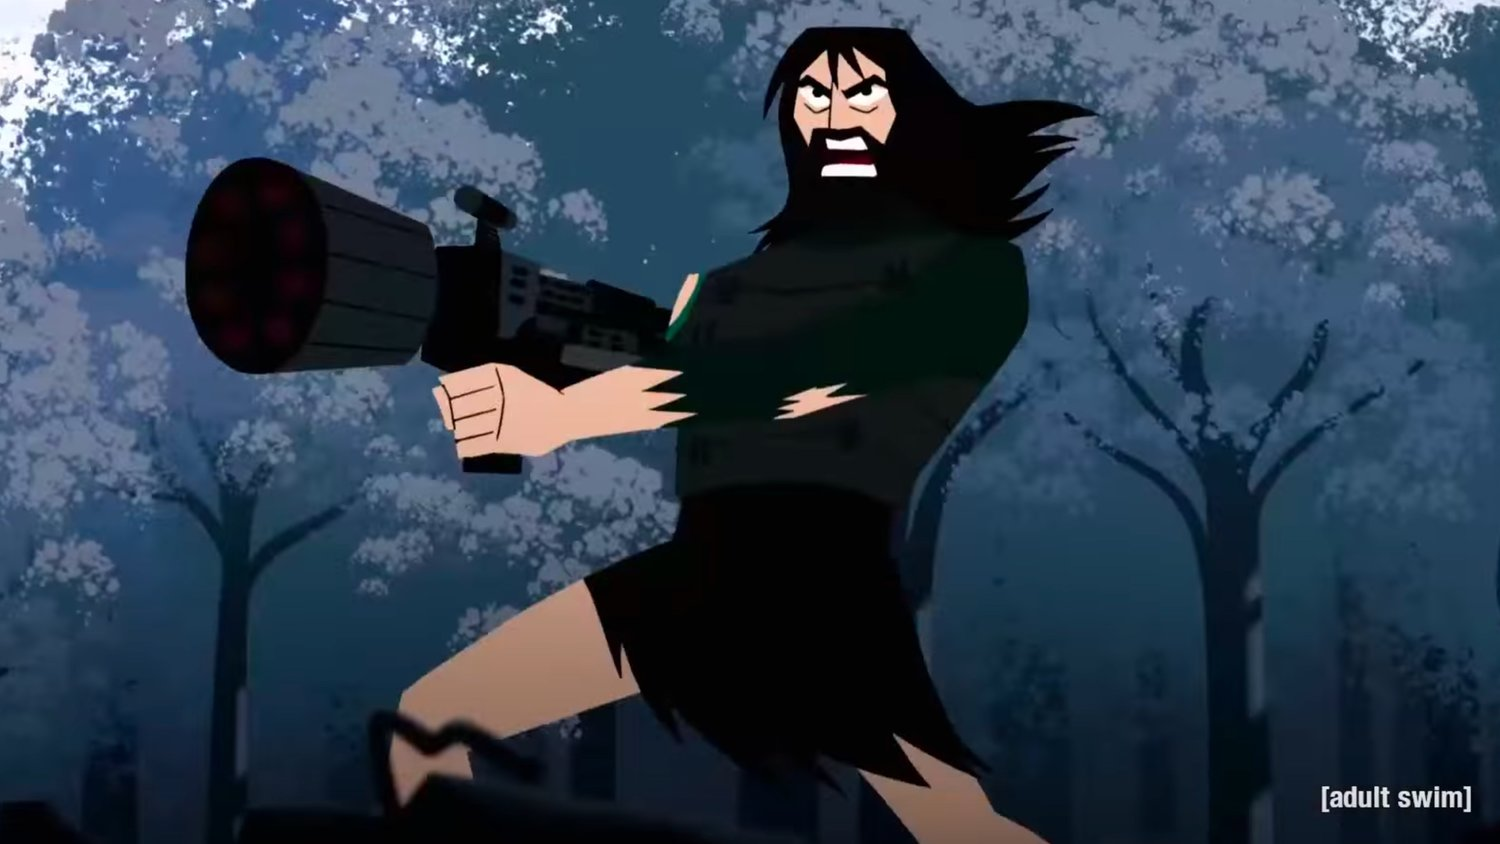 SAMURAI JACK Featurette Shows New Footage and the Creator Discusses Jack's Final Journey in Season 5